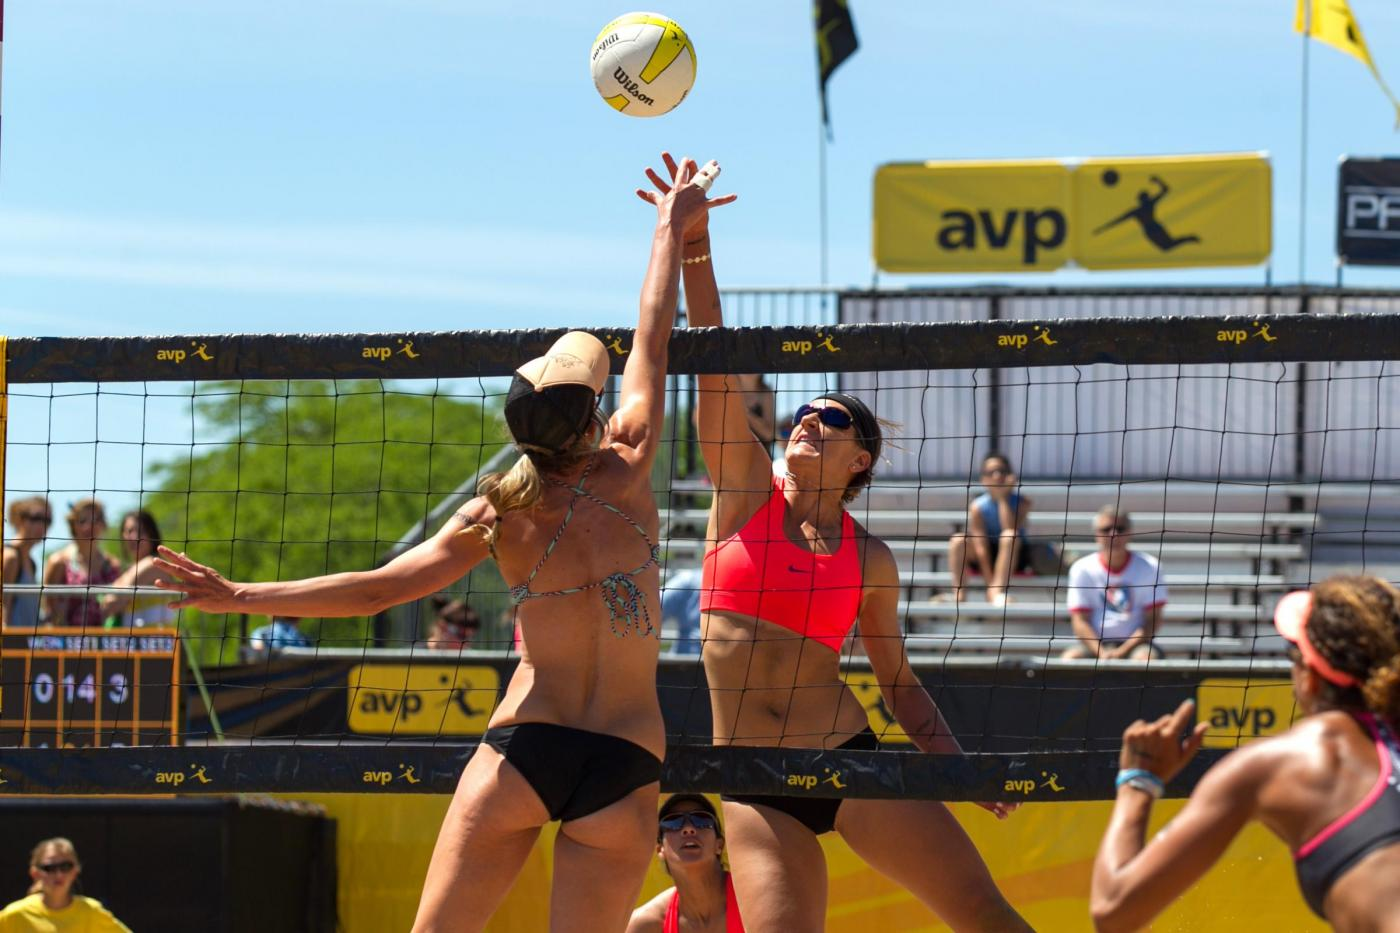 Beach Volley: al via ad Amburgo i Campionati Mondiali 2019